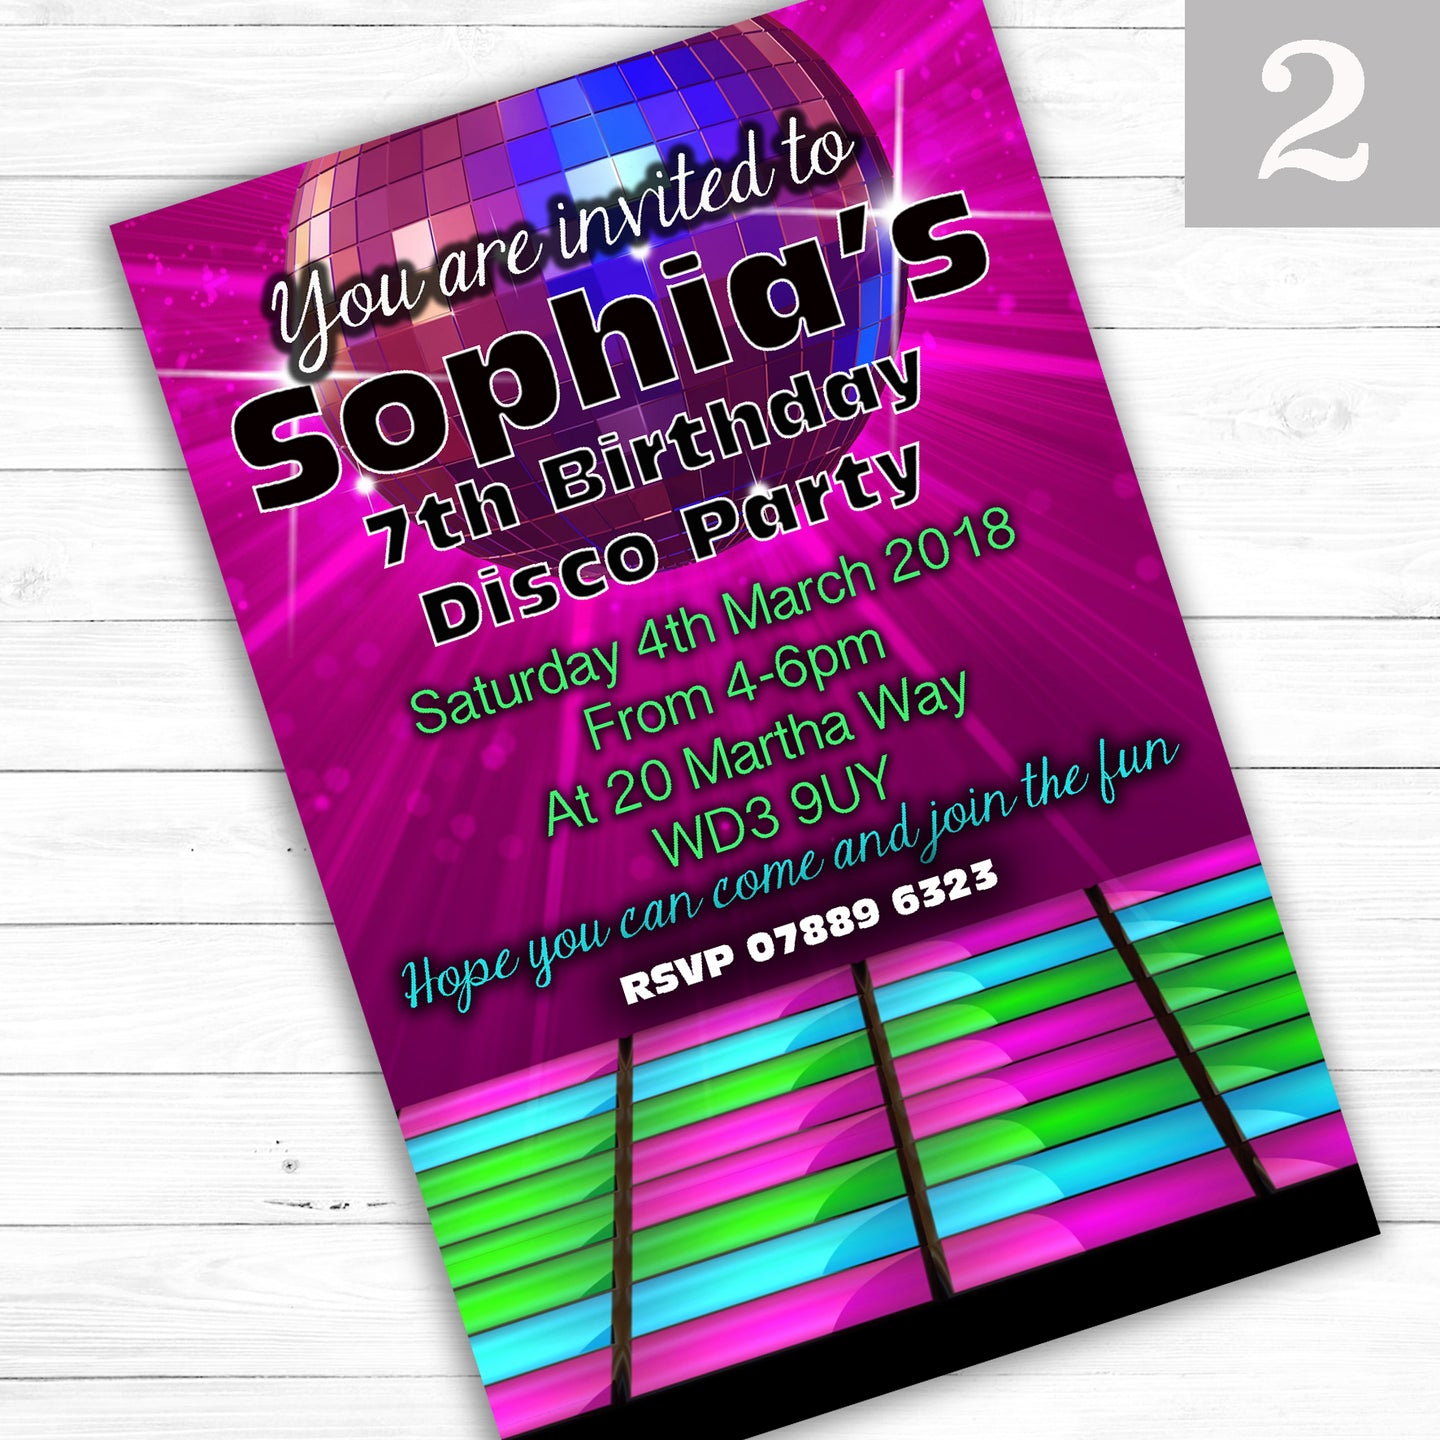 DISCO Children's Birthday Party Invite - CLCDesigns